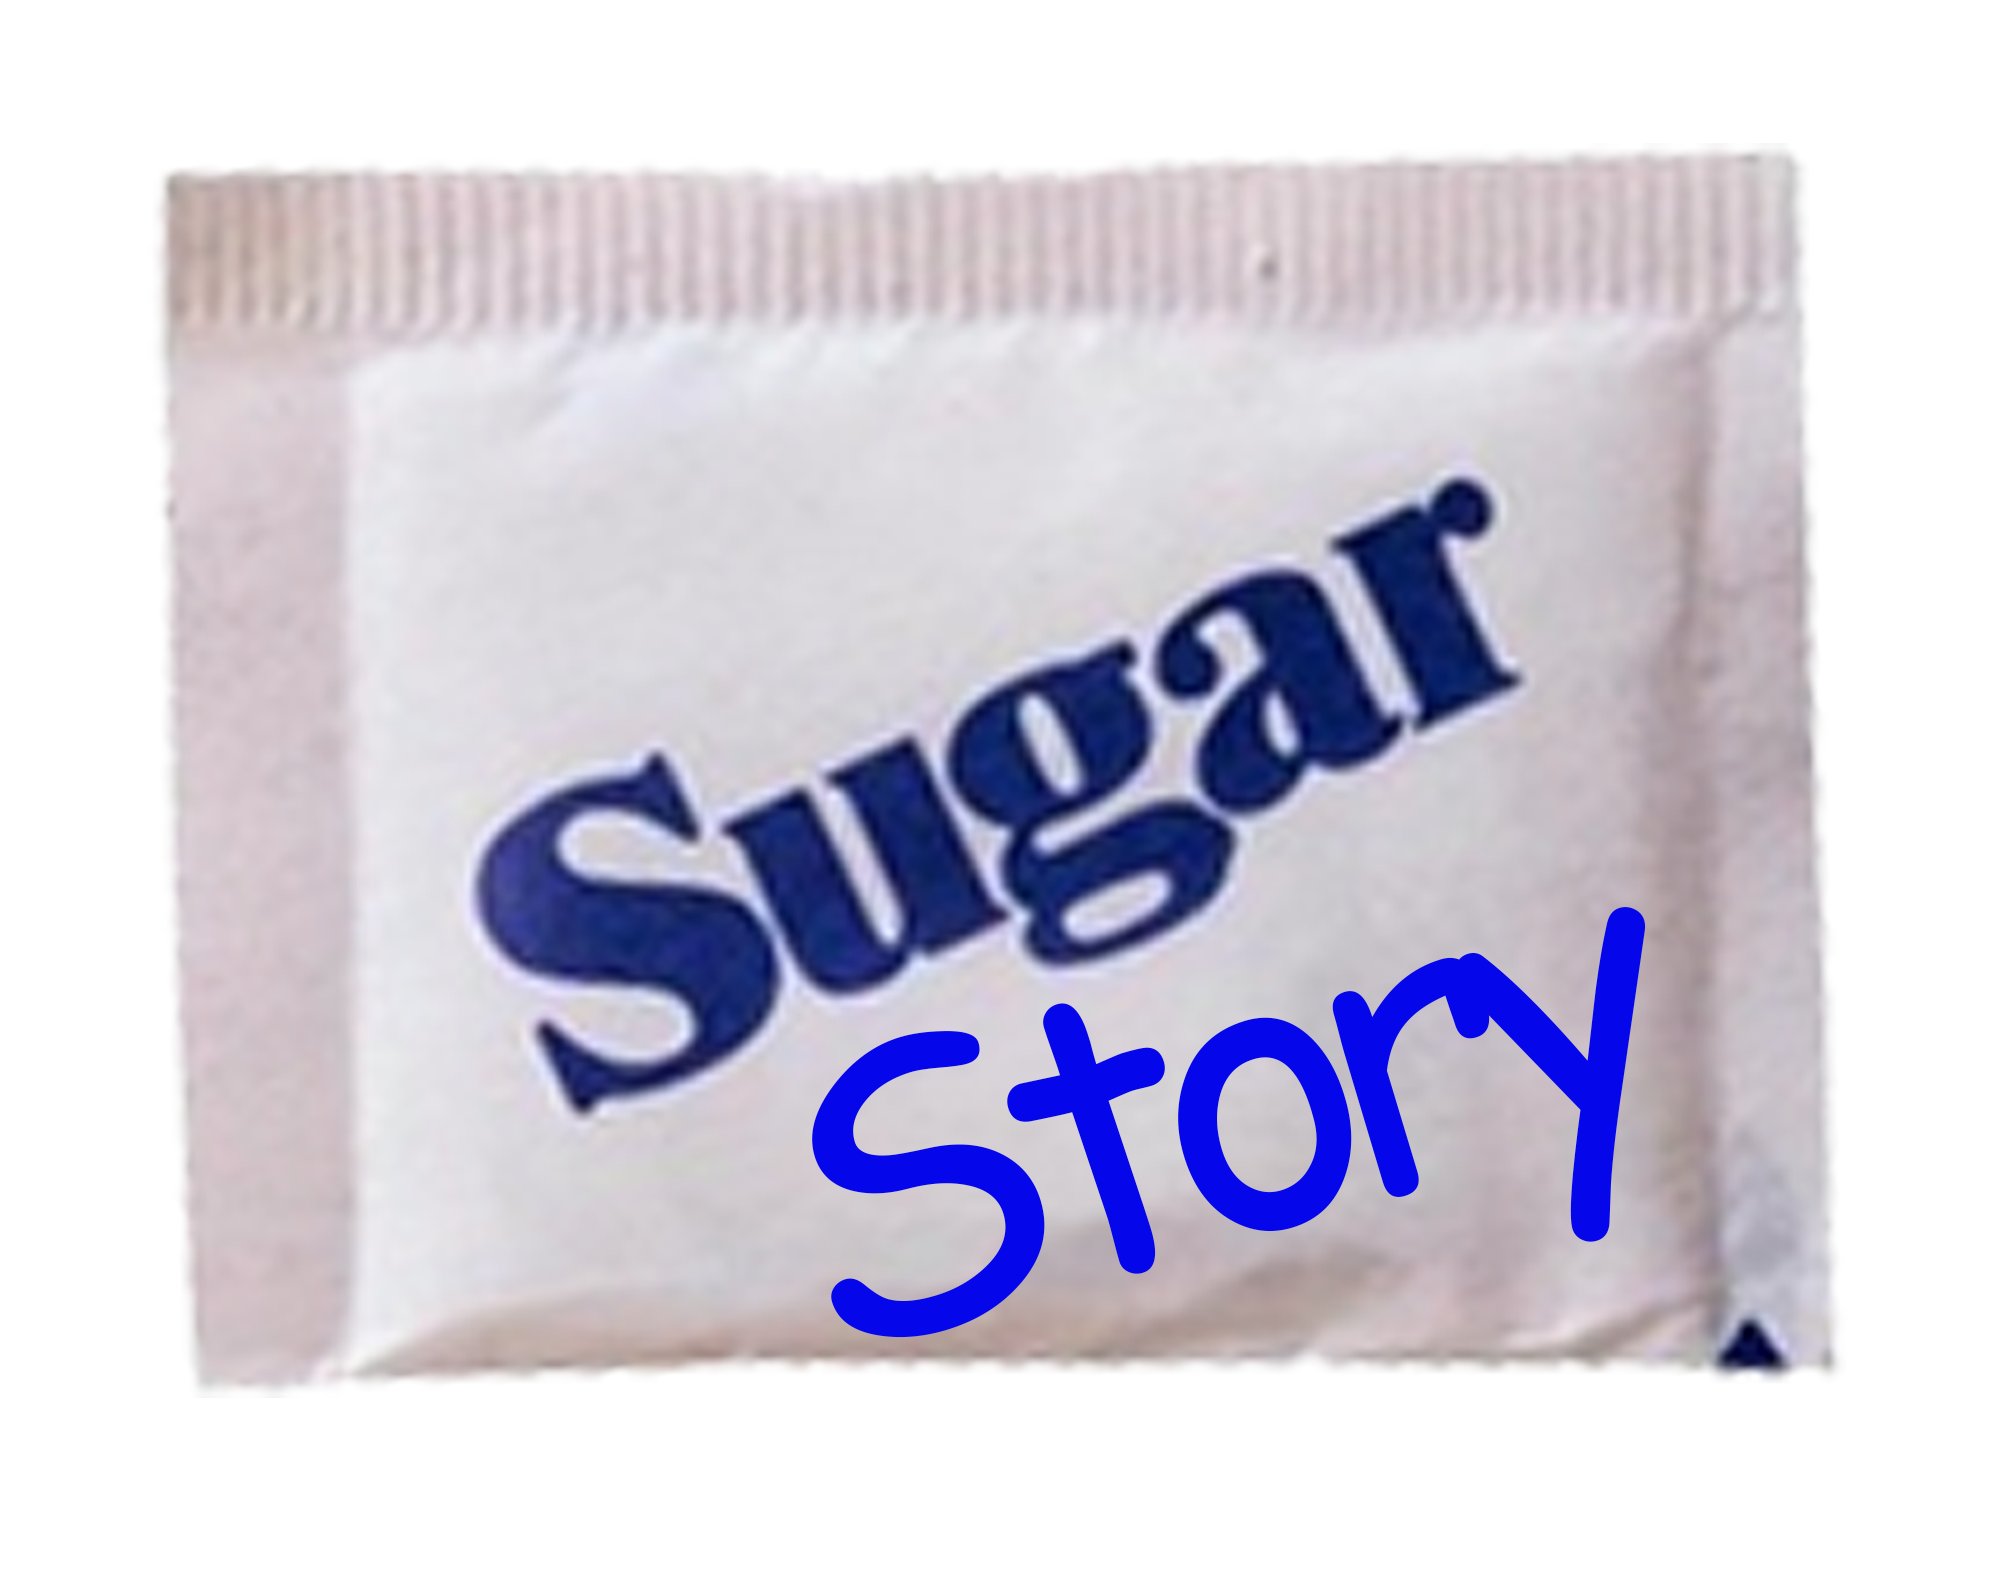 Sugar Story by aalves